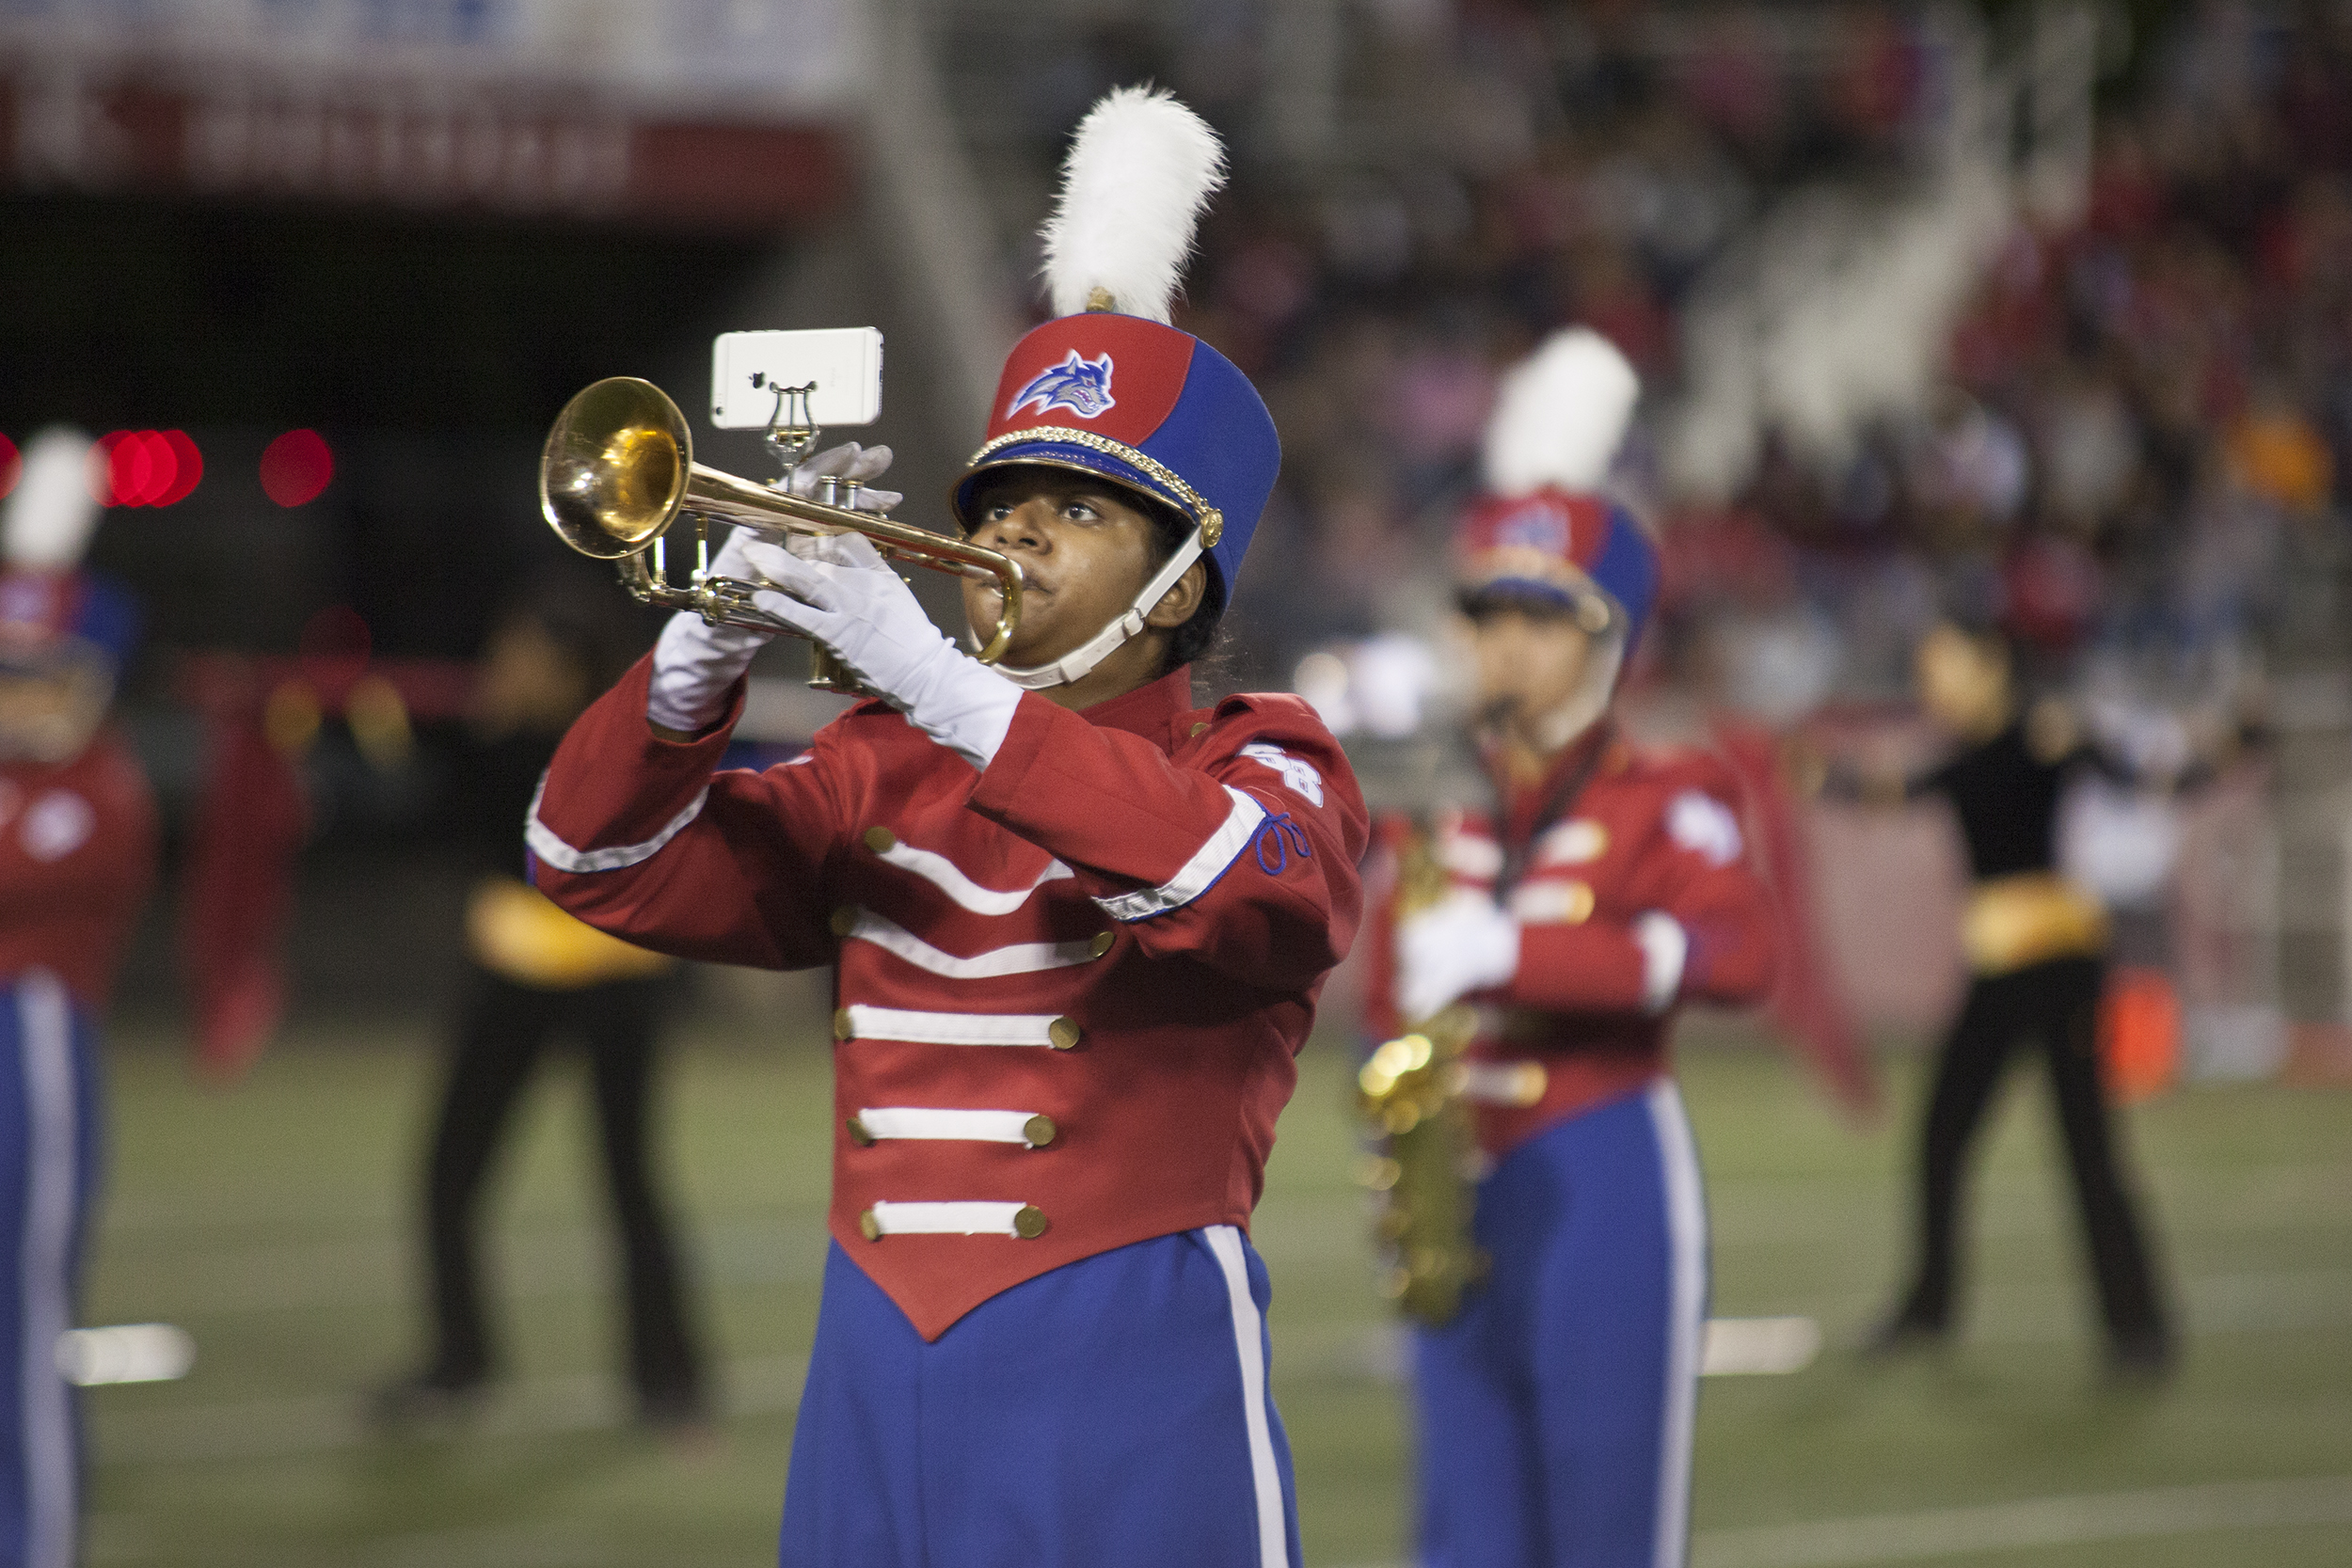 The marching band performed with band alumni during the halftime show. <em>ARACELY JIMENEZ/THE STATESMAN</em>